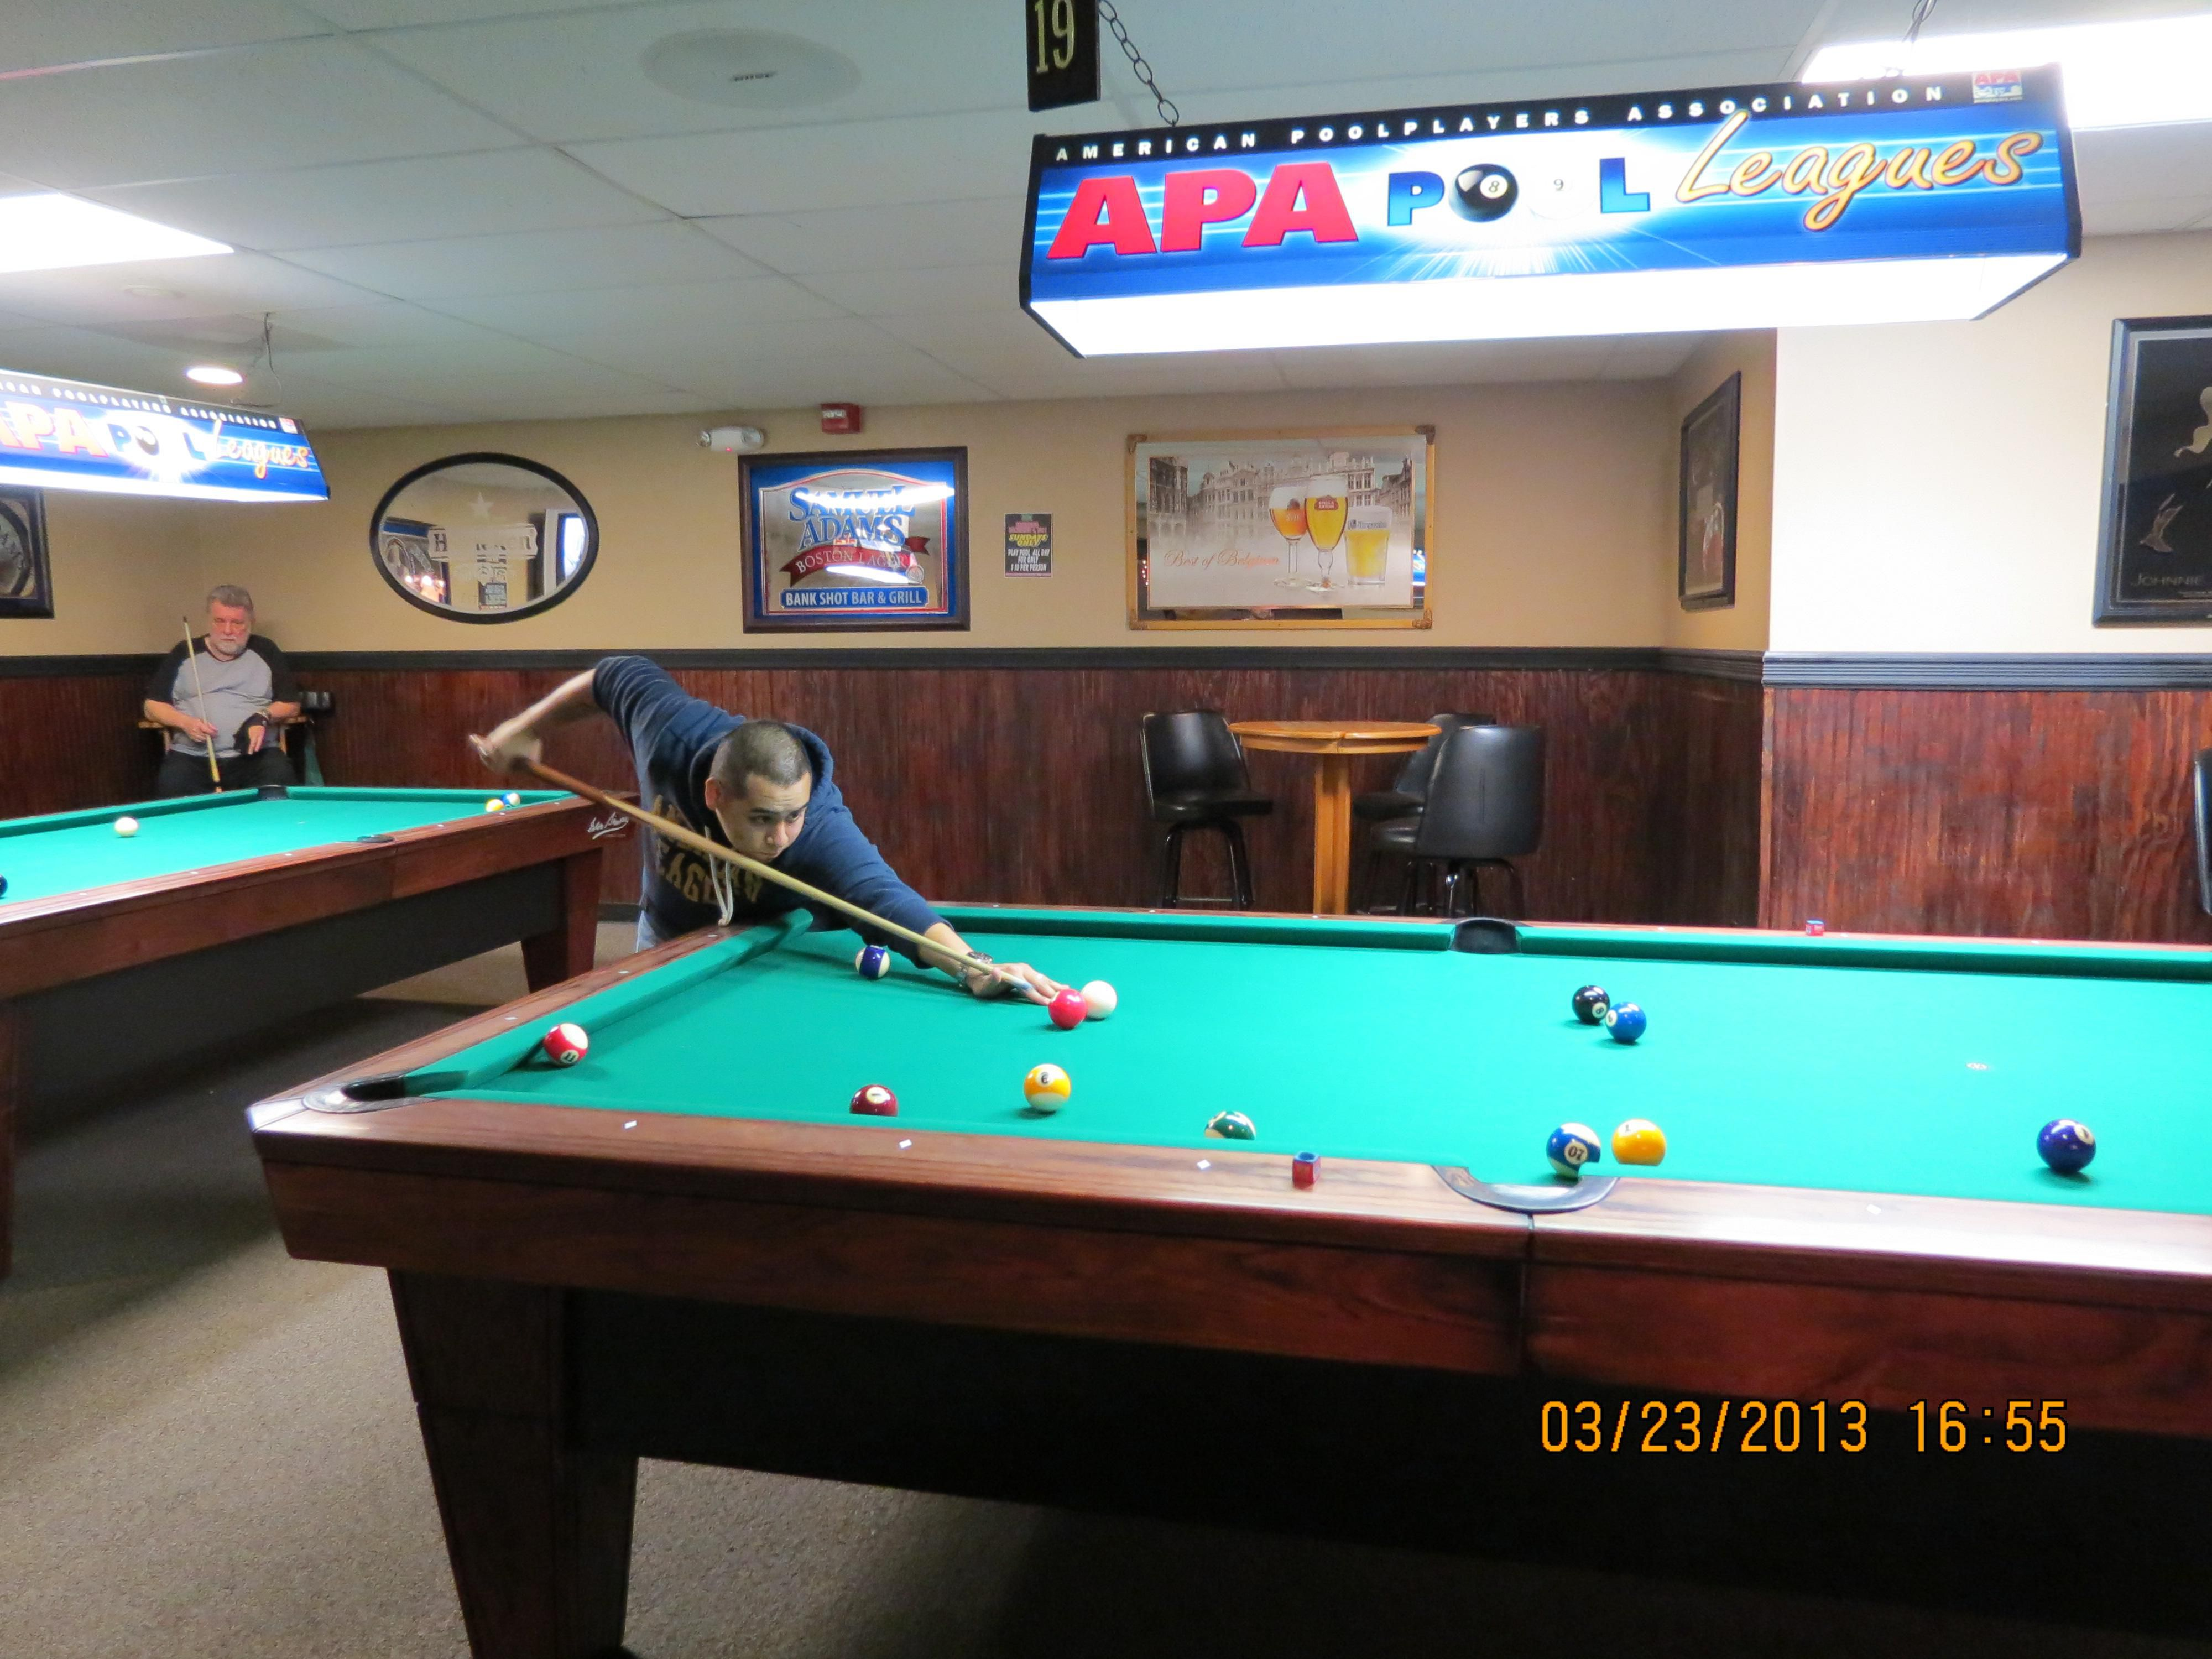 Pool Table Space Cheating SmallerSized Rooms - Room needed for pool table